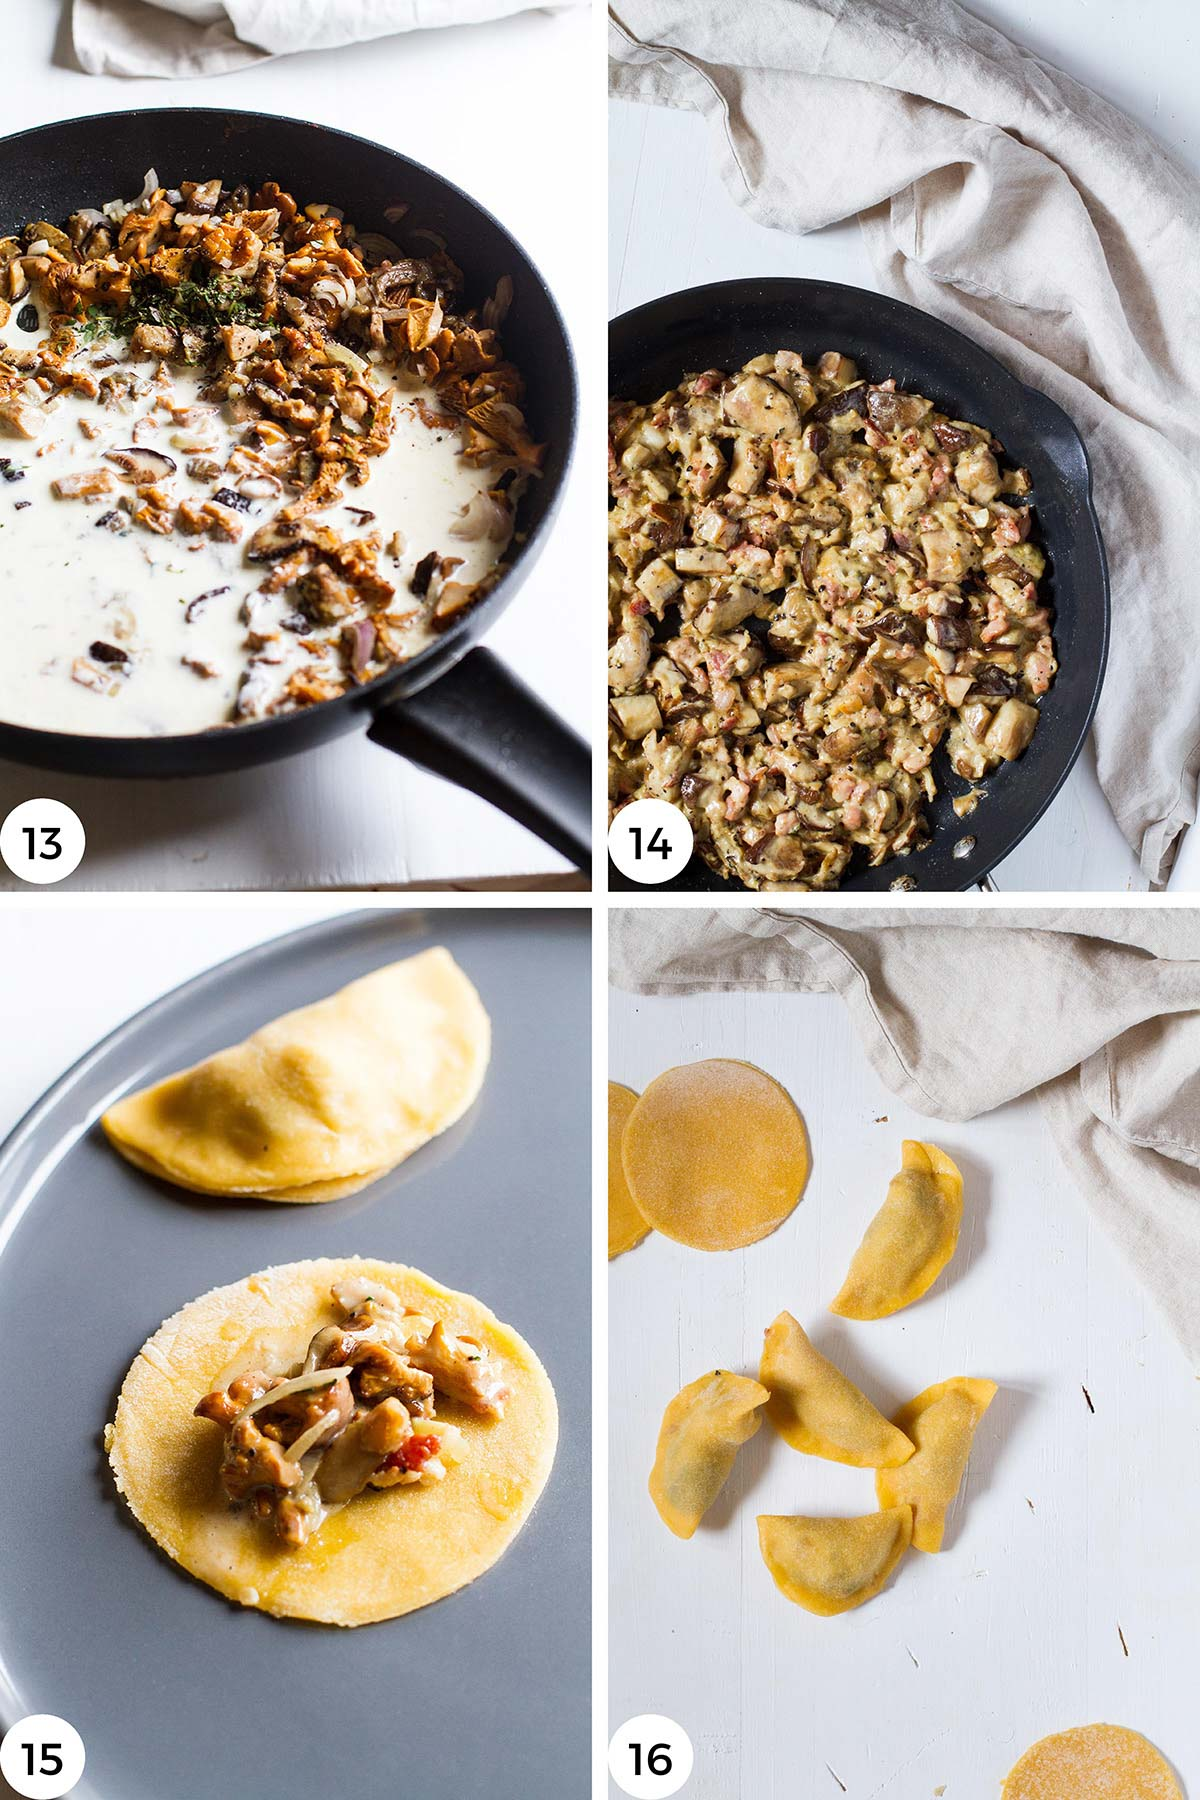 Steps to make filling and to fill the raviolis.